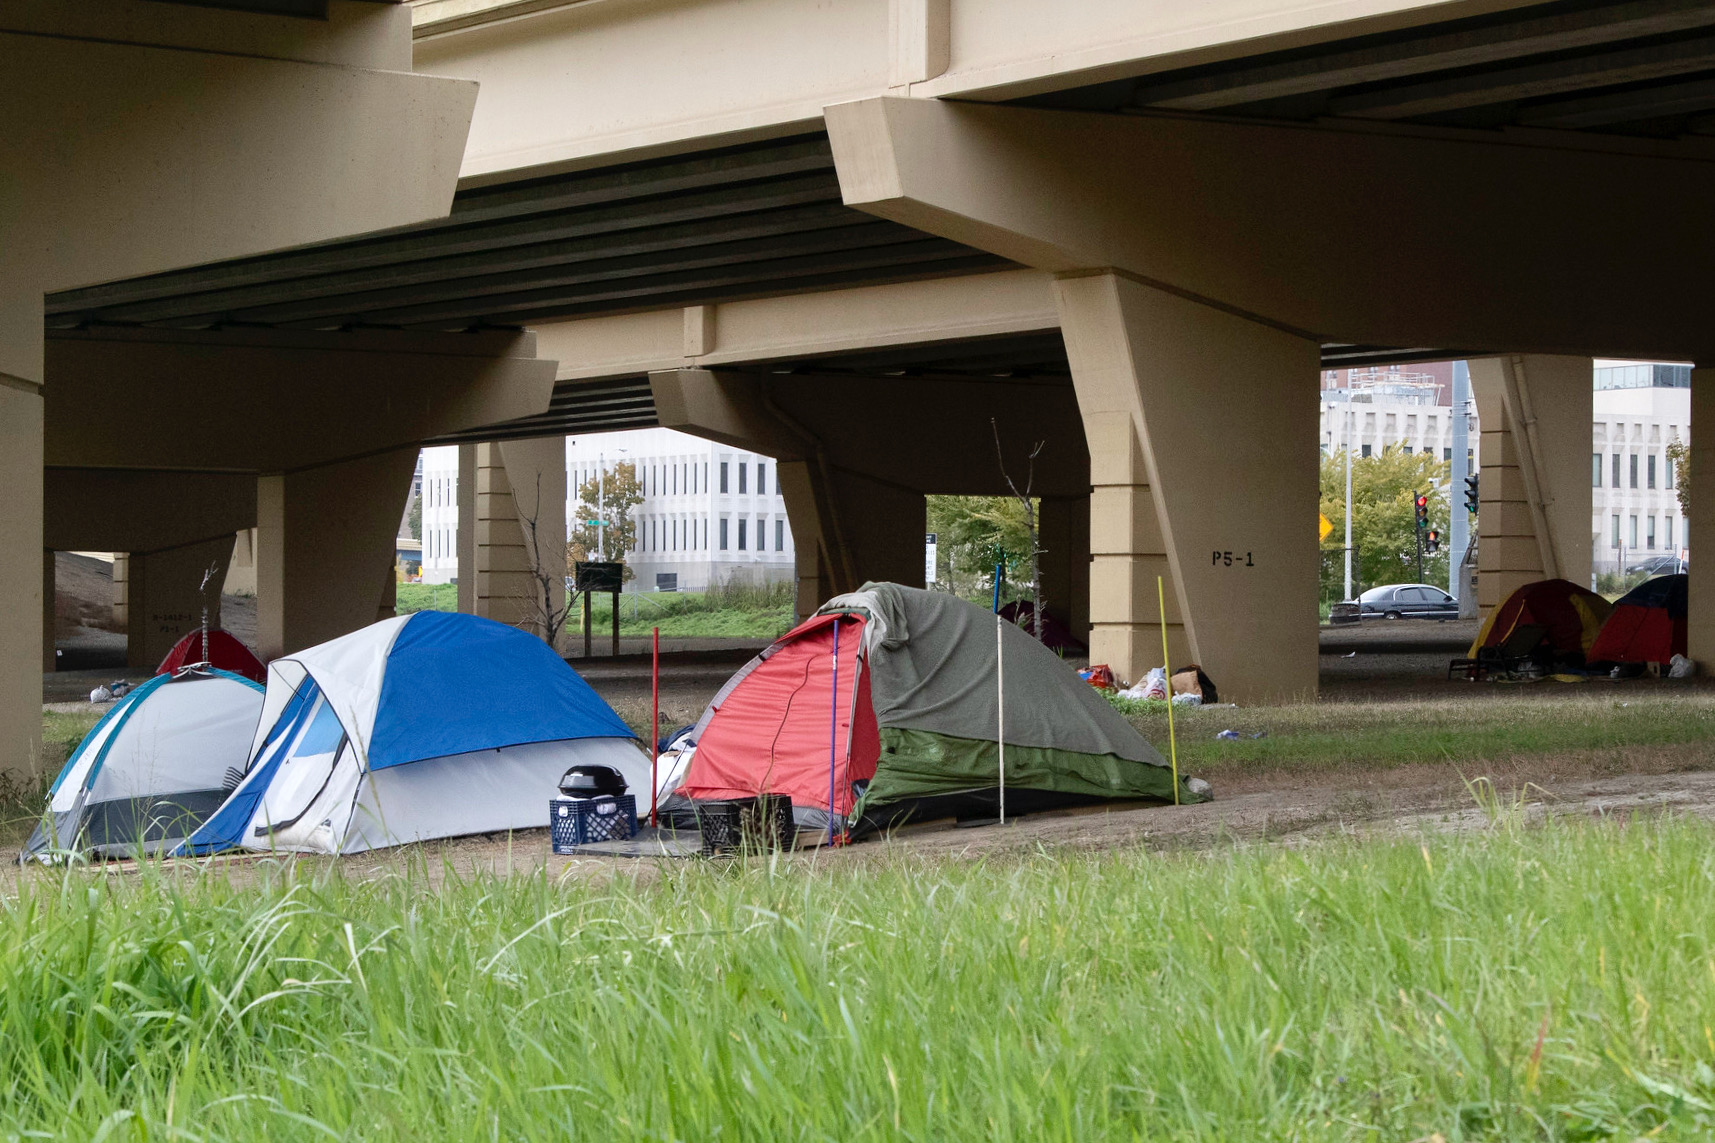 A count says homelessness has significantly dropped in Milwaukee. Those on the frontlines see a different trend.